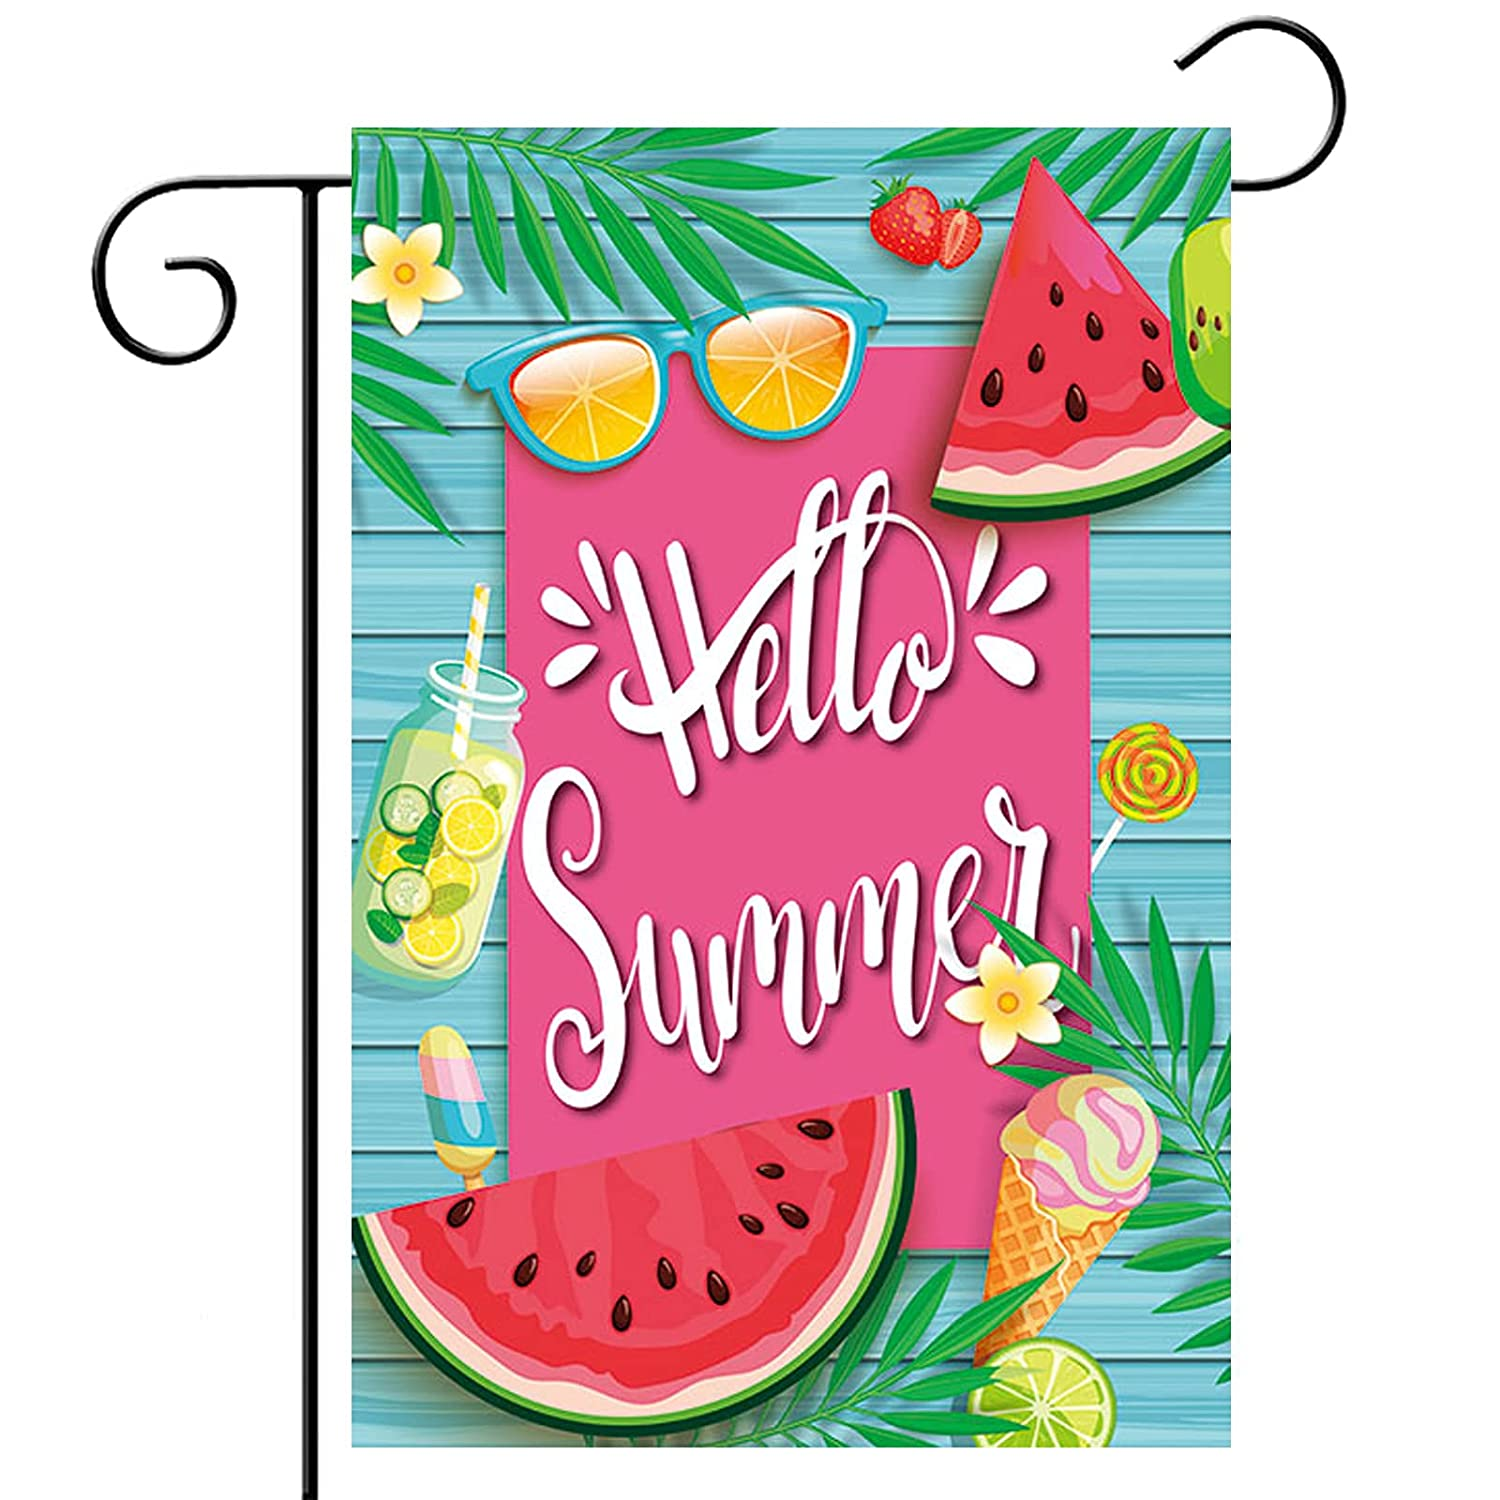 Hello Summer Watermelon Garden Flags for Outside 12x18 Double Sided Summer Tropical Hawaii Beach Vertical Garden Yard Flags Pool Home Summer Garden Decor Decorations Outdoor